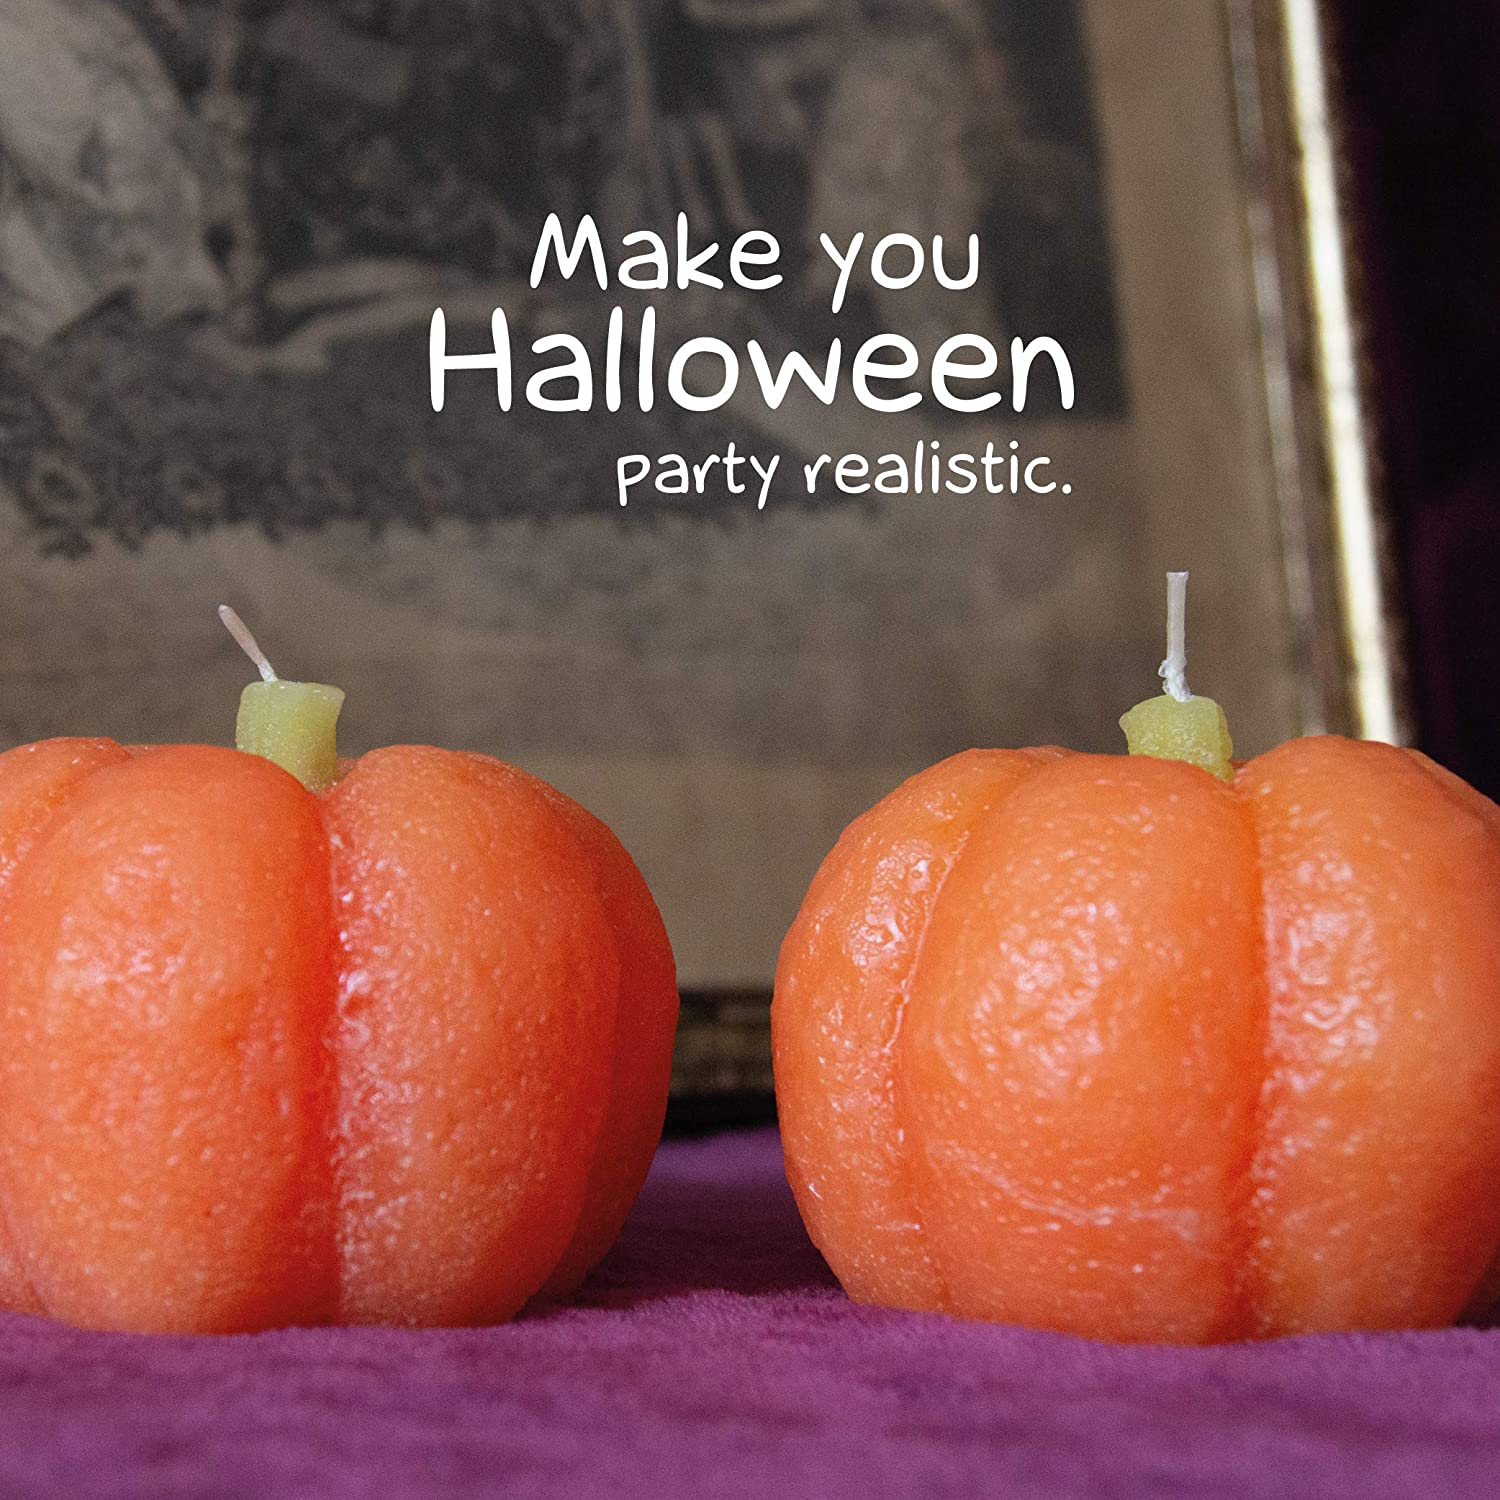 Long Lasting Candles for Home CANDWAX 2 pcs Orange Fall Pumpkin Decor Candle for Cute Halloween Decoration Funny Candles